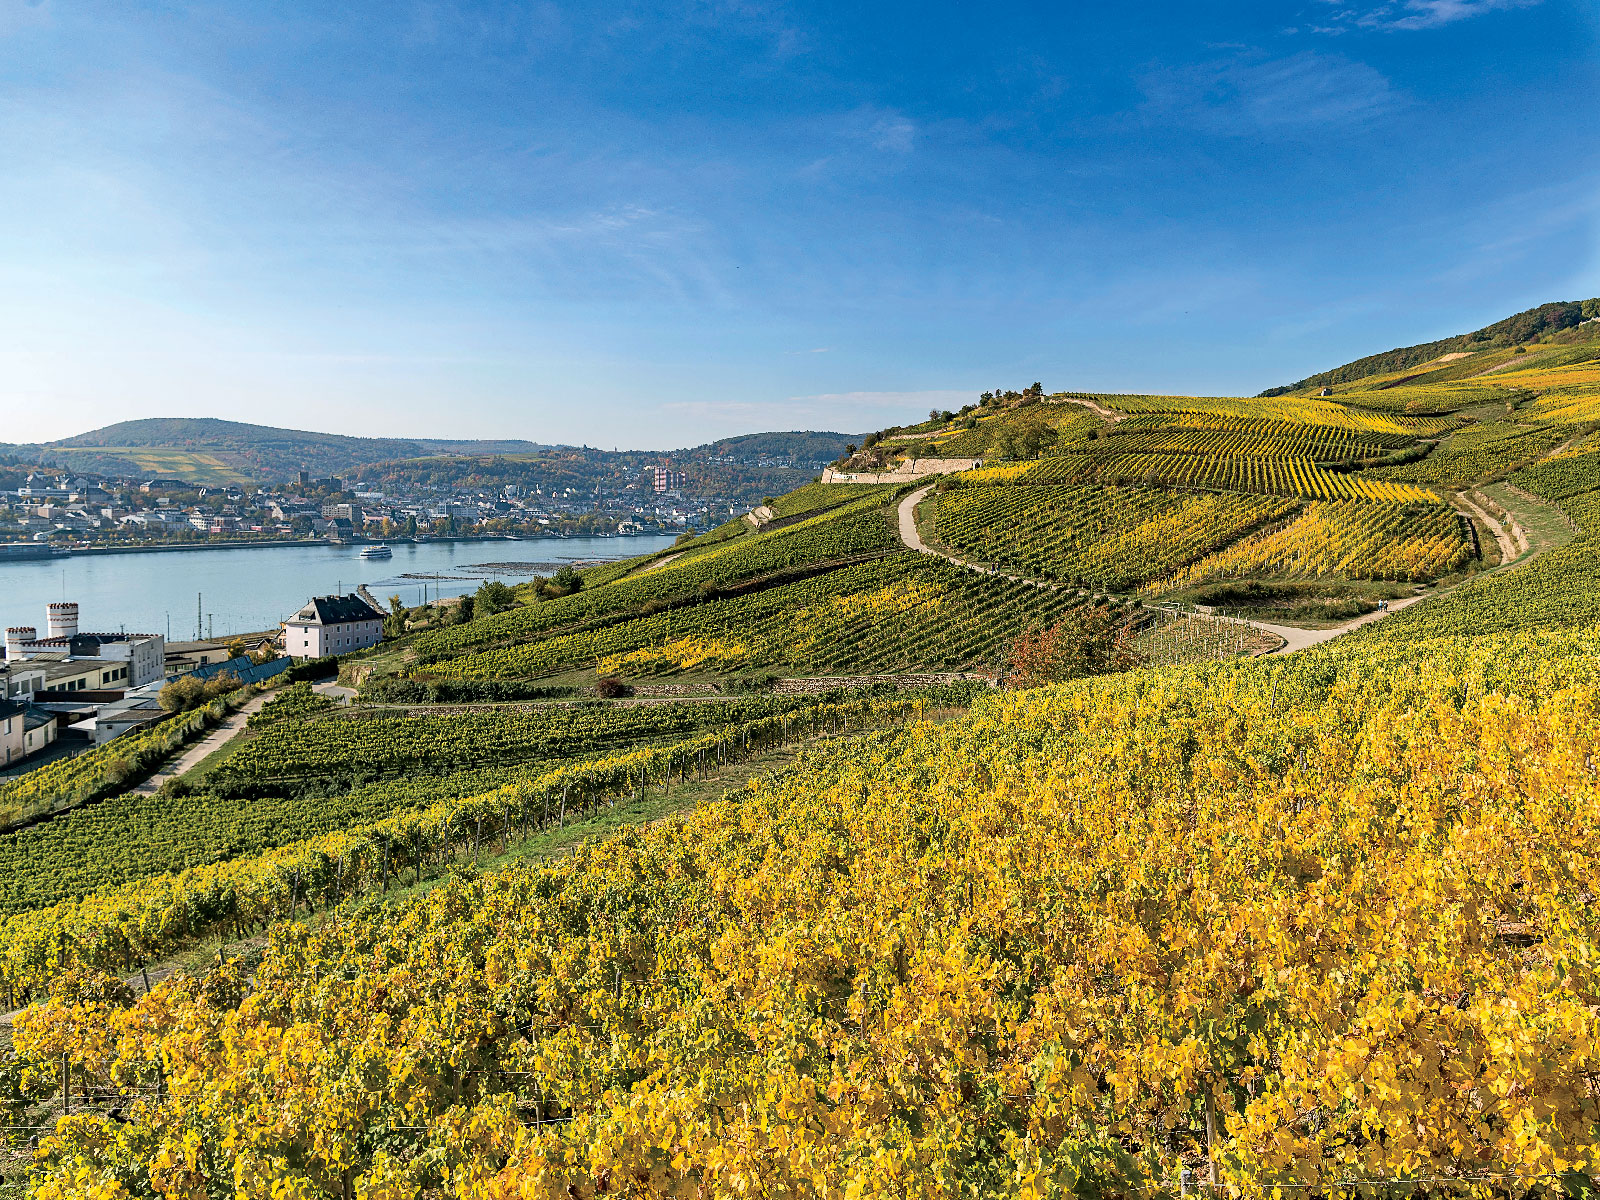 cruise-culinary-guide-explore-wine-country-FT-MAG0119.jpg